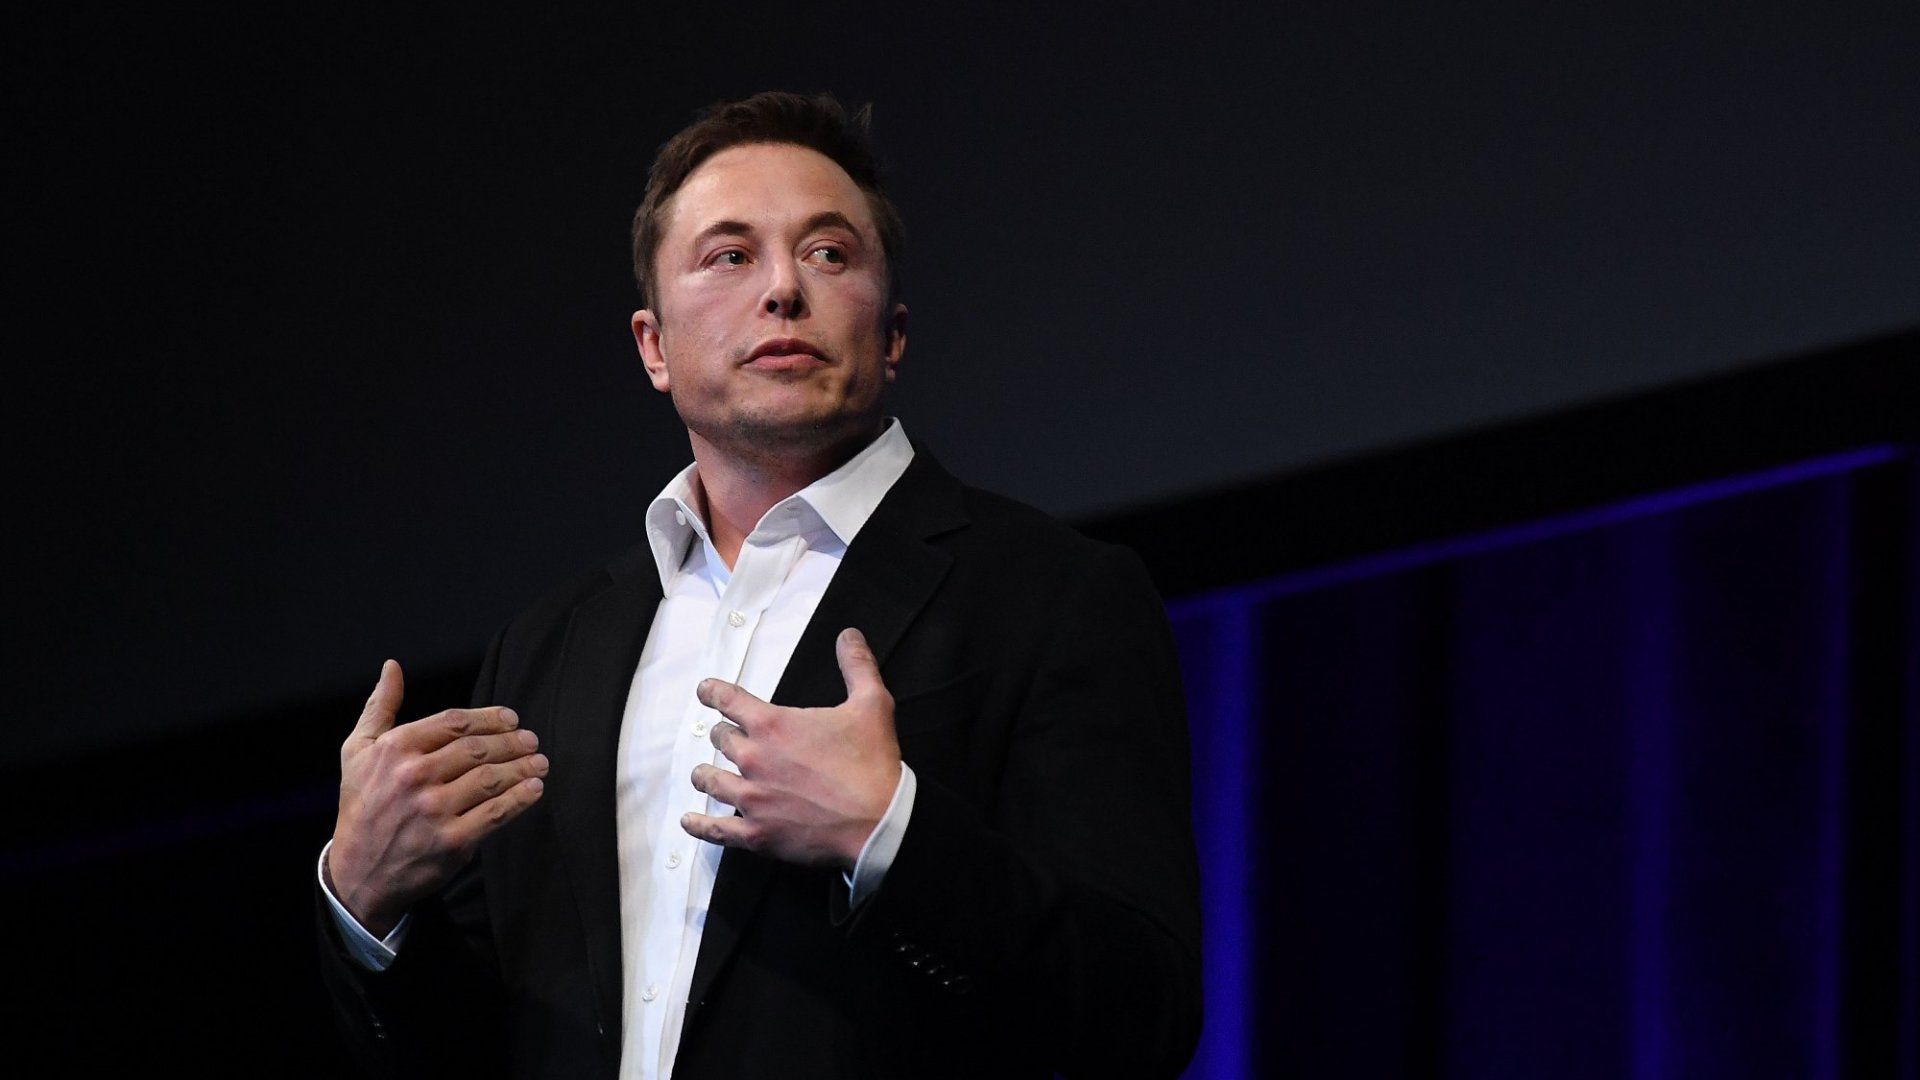 Even Facing a Possible Contempt Action, Elon Musk Wants to Keep on Tweeting